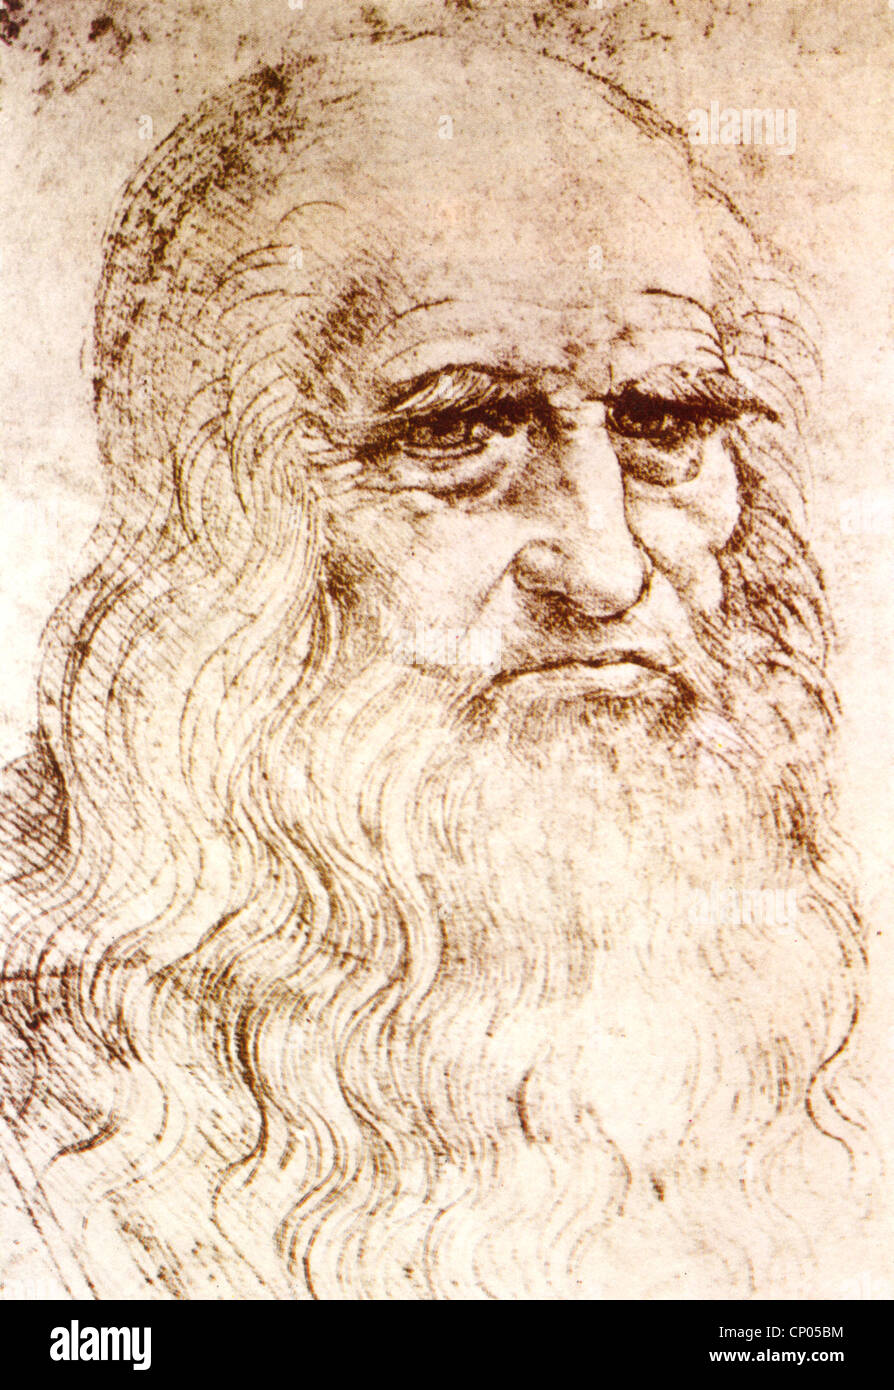 LEONARDO da VINCI (1452-1519) Italian Renaissance polymath - self portrait in red chalk about 1514 - Stock Image